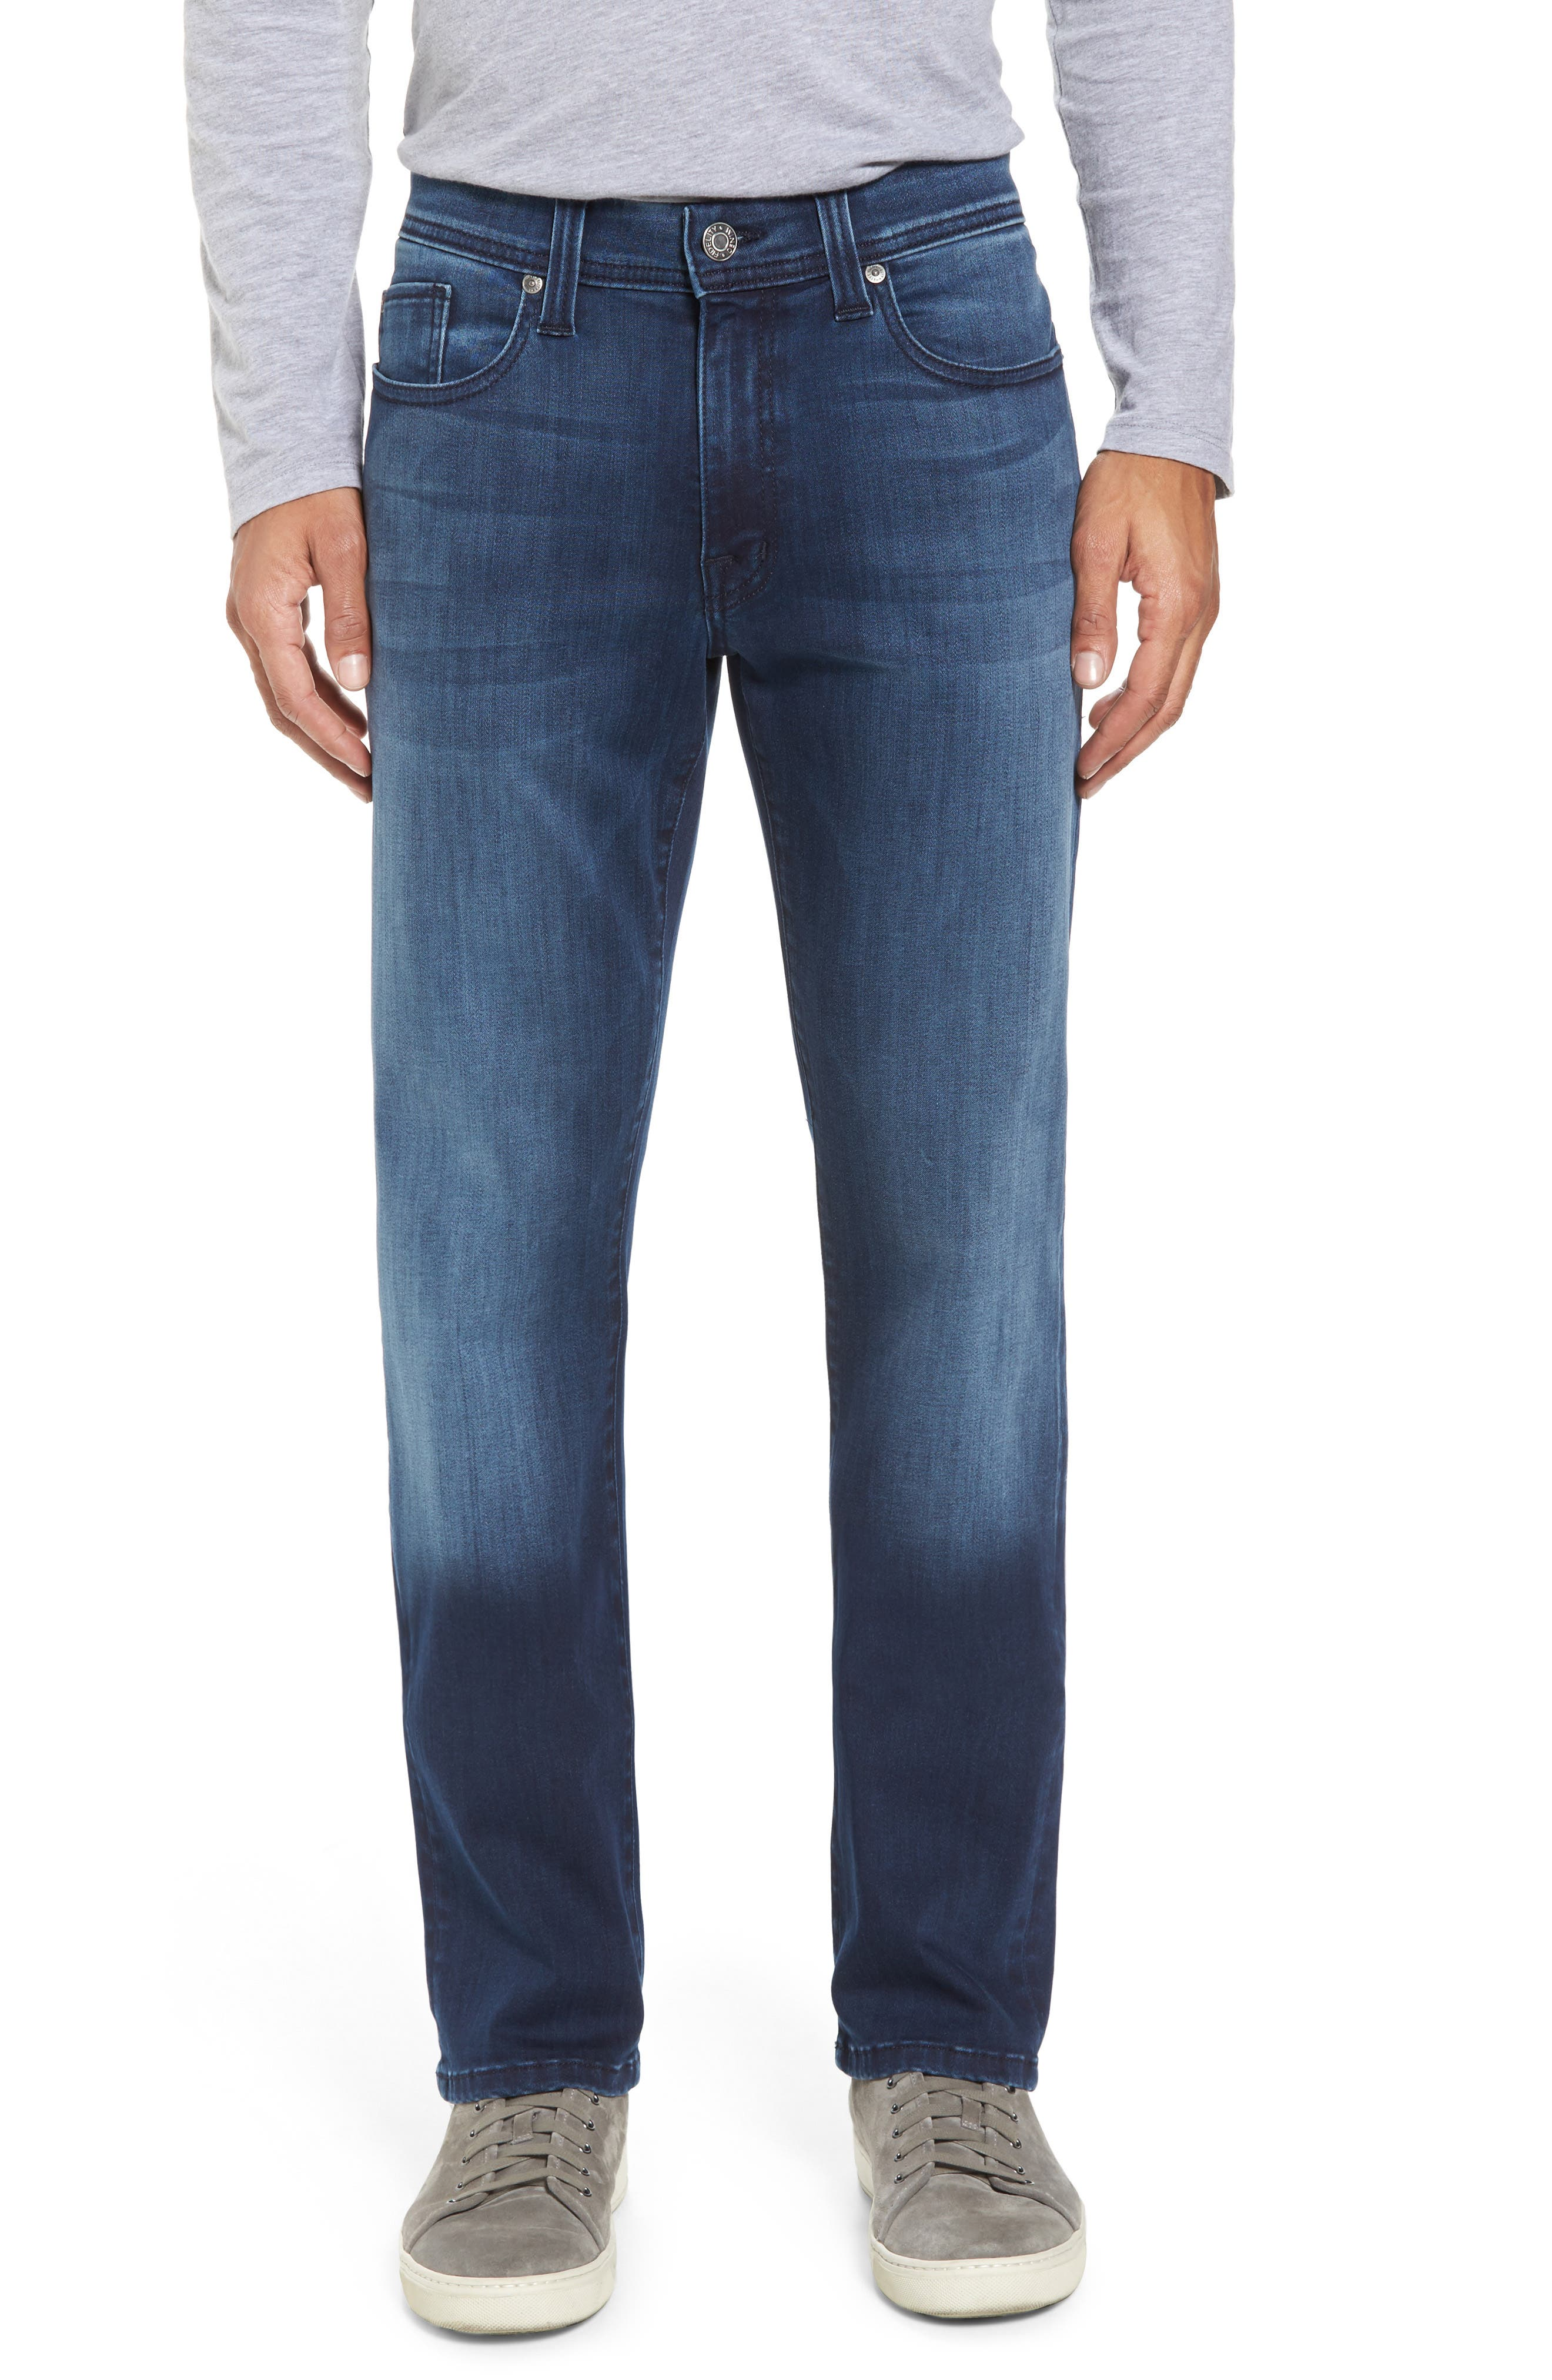 Jimmy Slim Straight Leg Jeans,                             Main thumbnail 1, color,                             Galaxy Blue